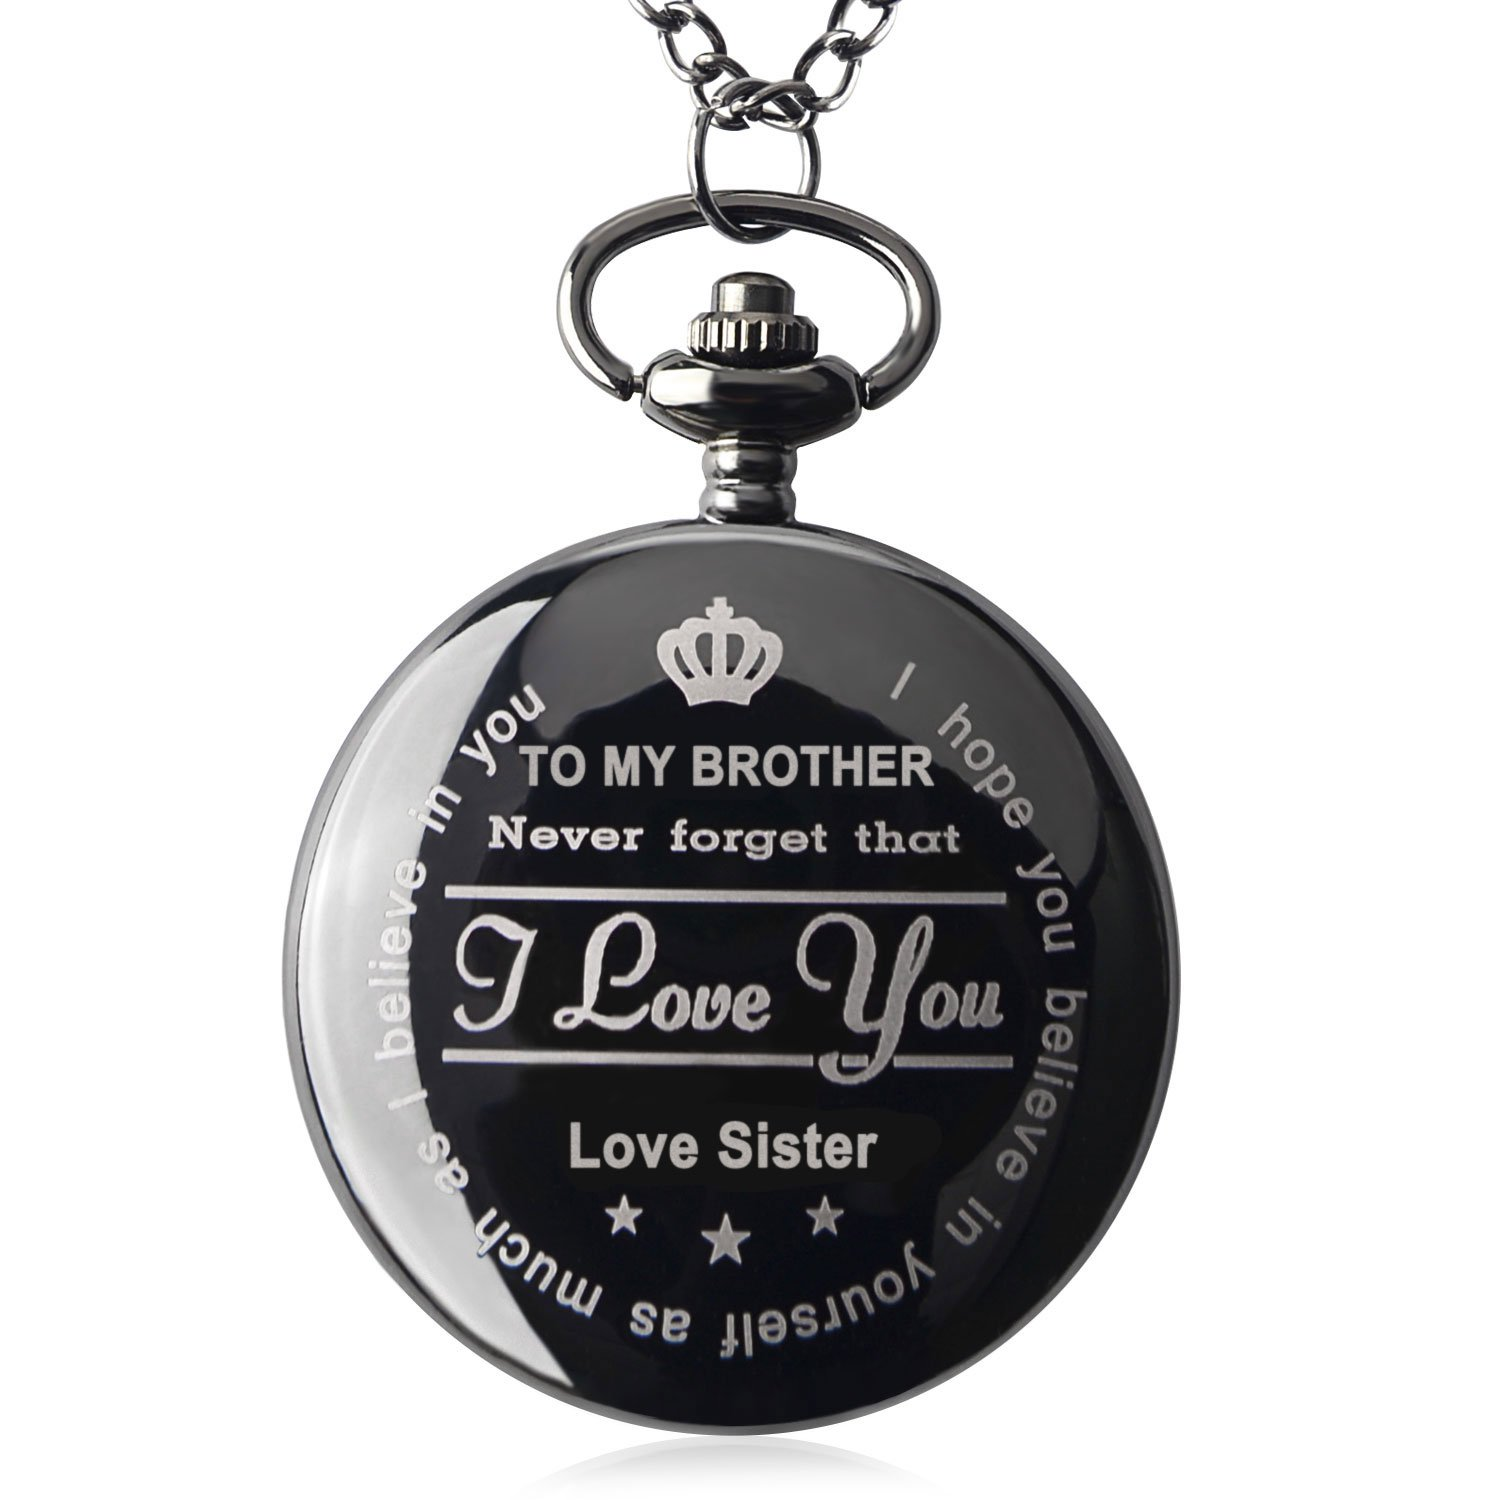 Brother Gifts for Birthday or Anniversaries Graduation Novelty Gift to Big Brother from Brother or Sister Engraved Pocket Watch with Gift Box for Men (Love Sister Black) by Samuel (Image #1)